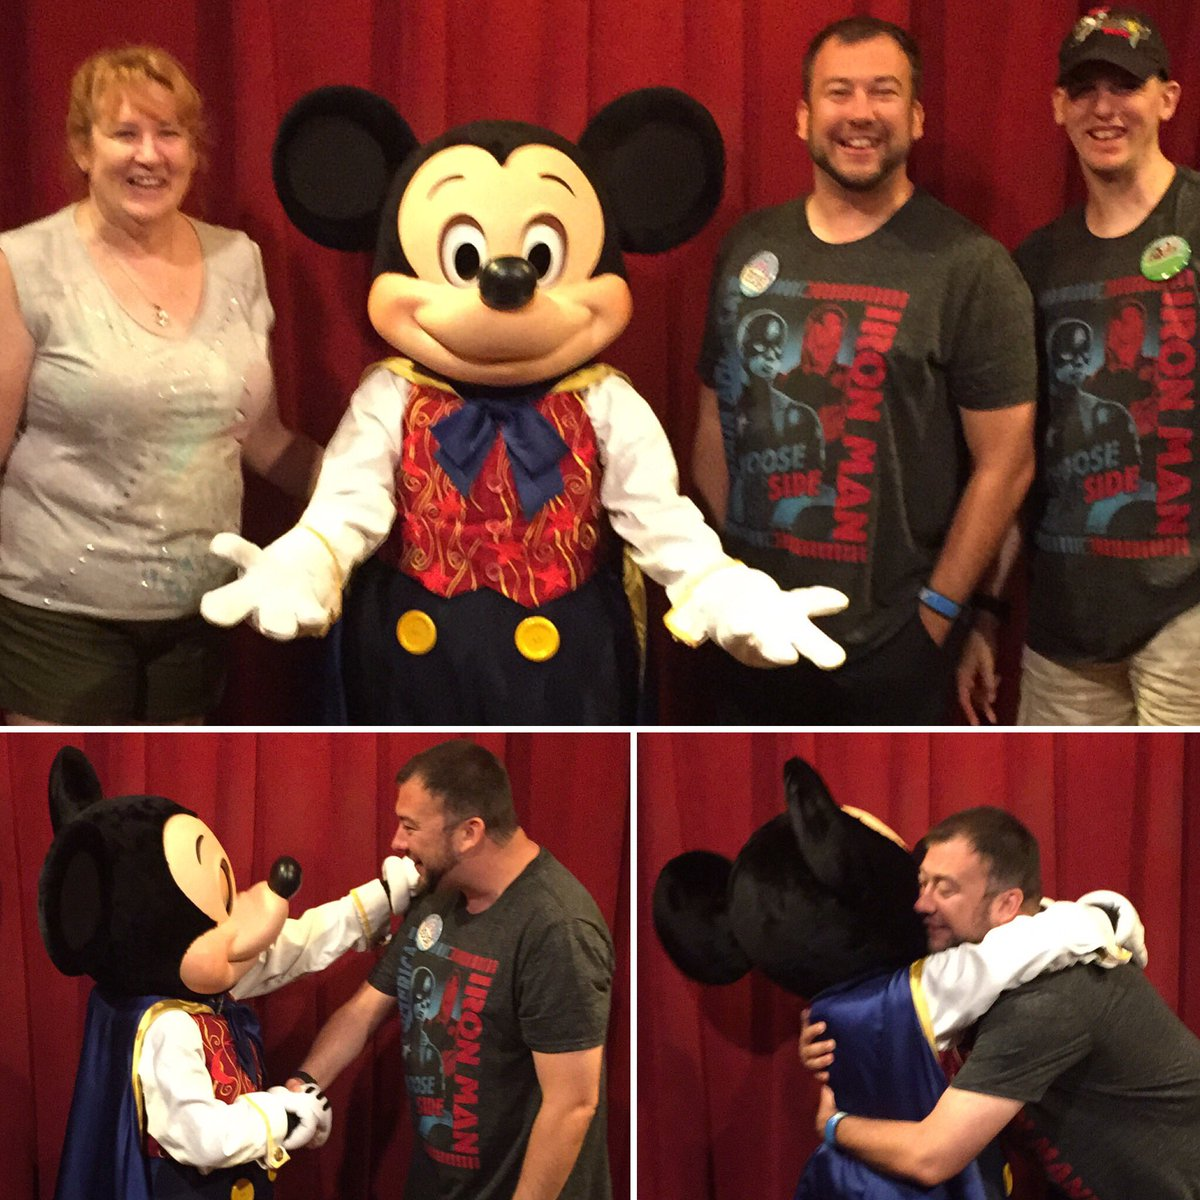 Happy Birthday Mickey Mouse.. Thanks for helping my dreams come true!! #HappyBirthdayMickey #disney #disneyside #MickeyMouse<br>http://pic.twitter.com/3xDsDls0k2